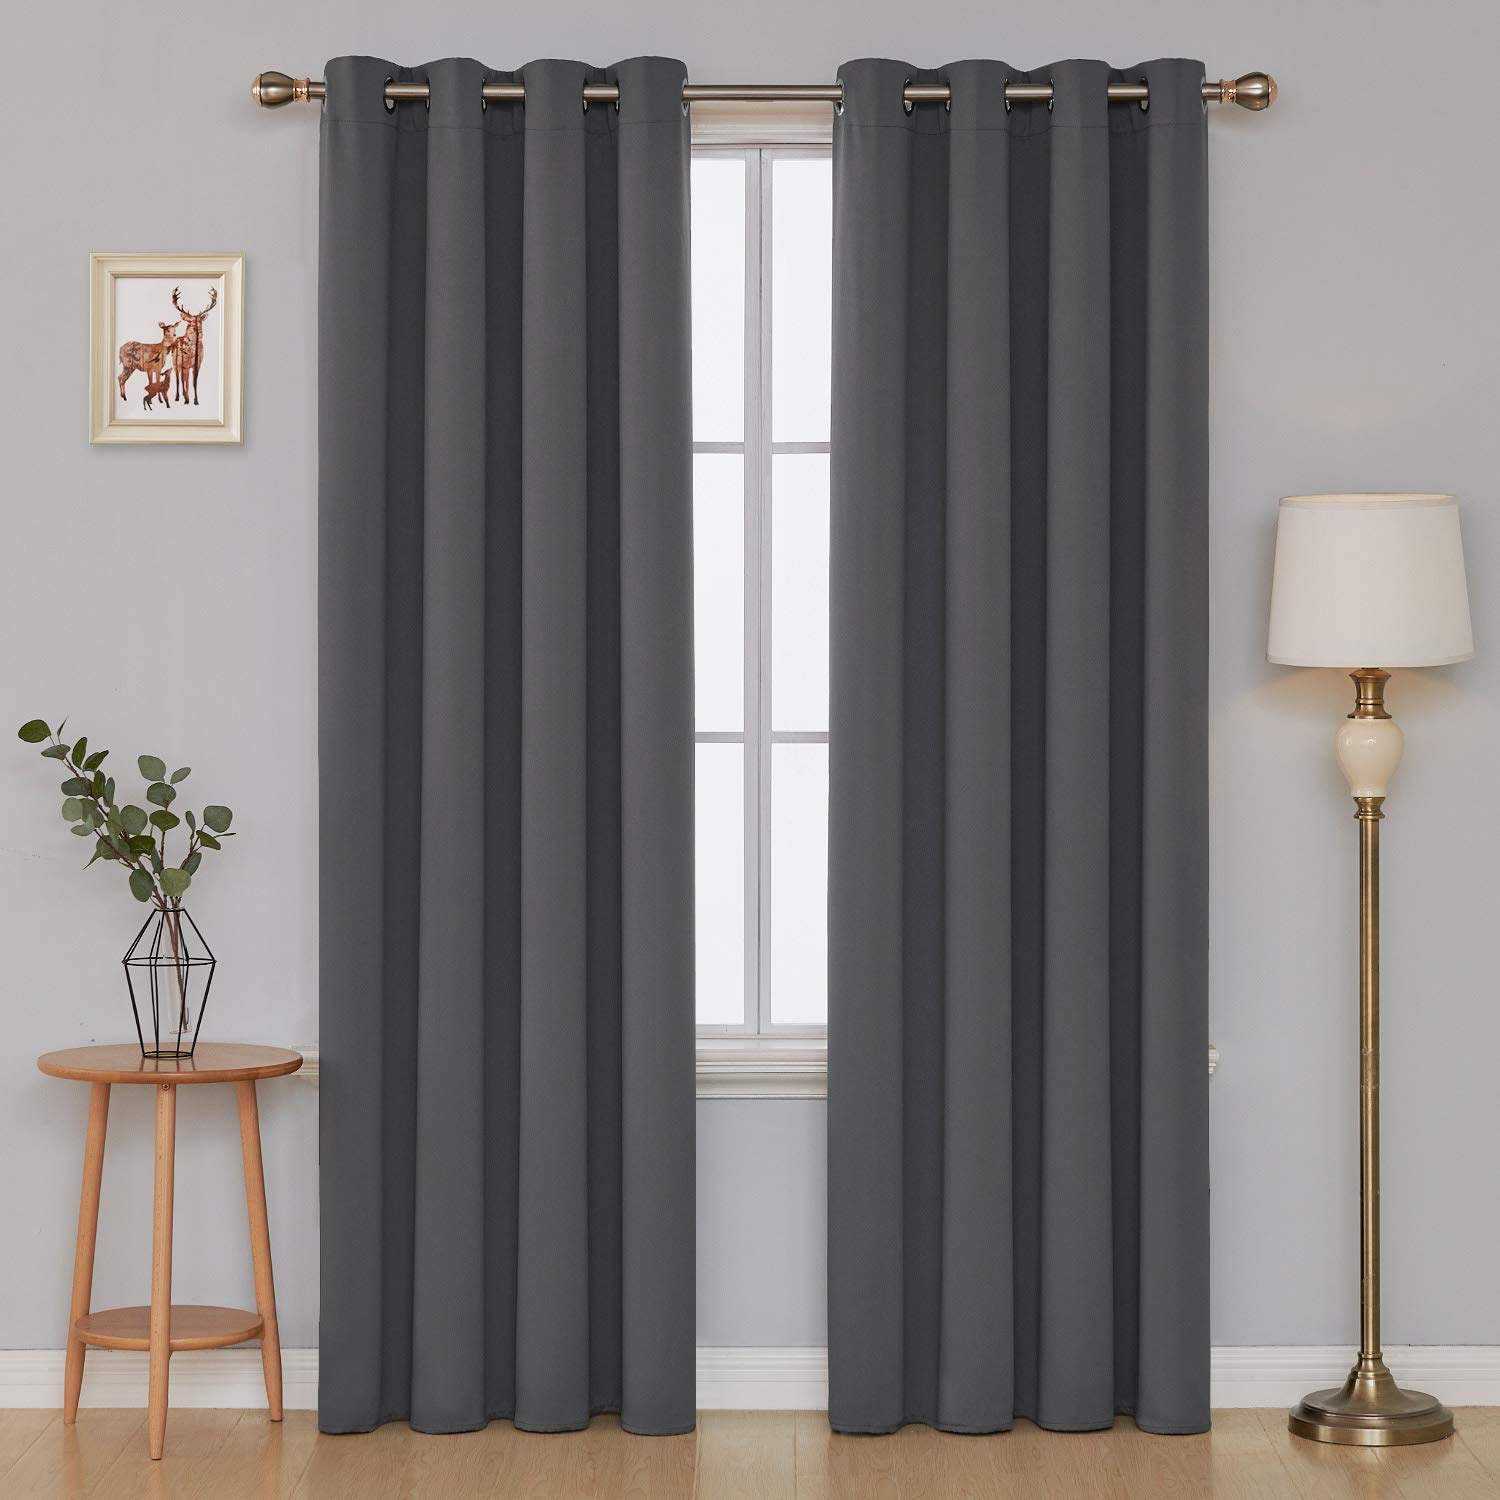 Deconovo Super Soft Room Darkening Nursery Curtains Eyelet Blackout Curtains for Kids with Two FREE Tiebacks 52 x 54 Drop Inch Grey Two Panels